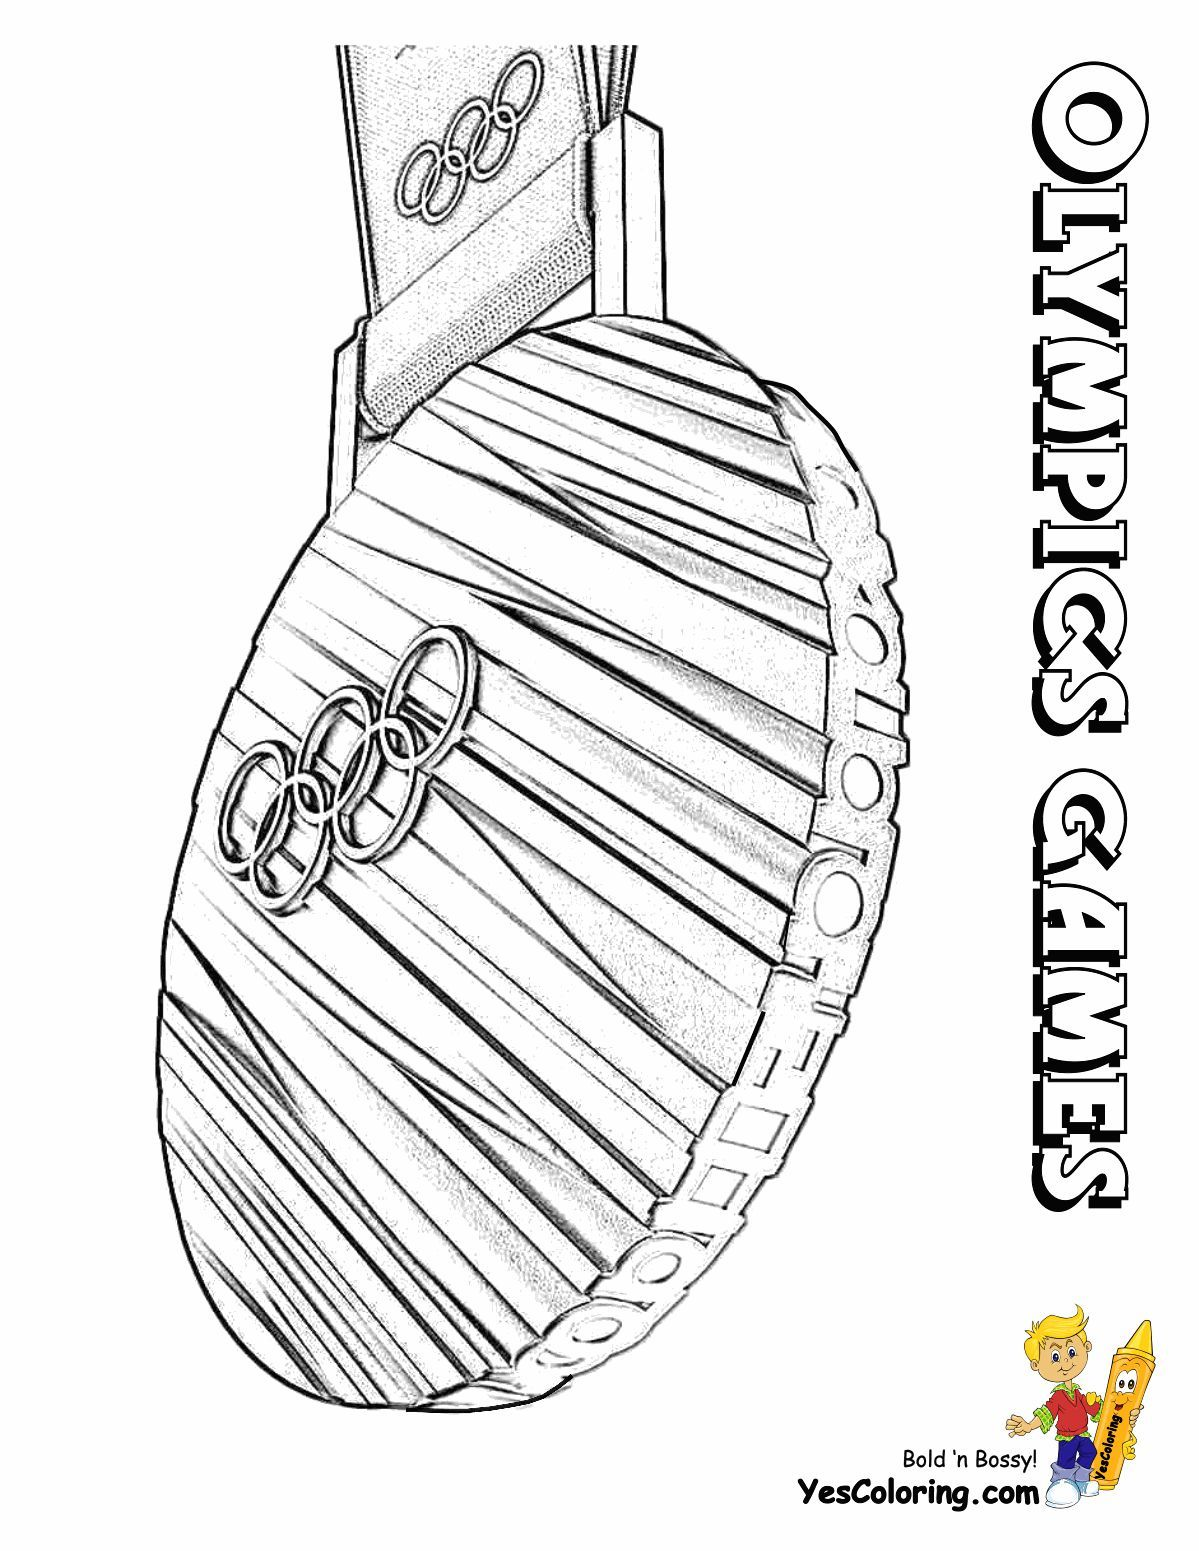 print out this olympic gold medal coloring page   u0026quot you kiddin   u0026quot  tell other coloring kids your